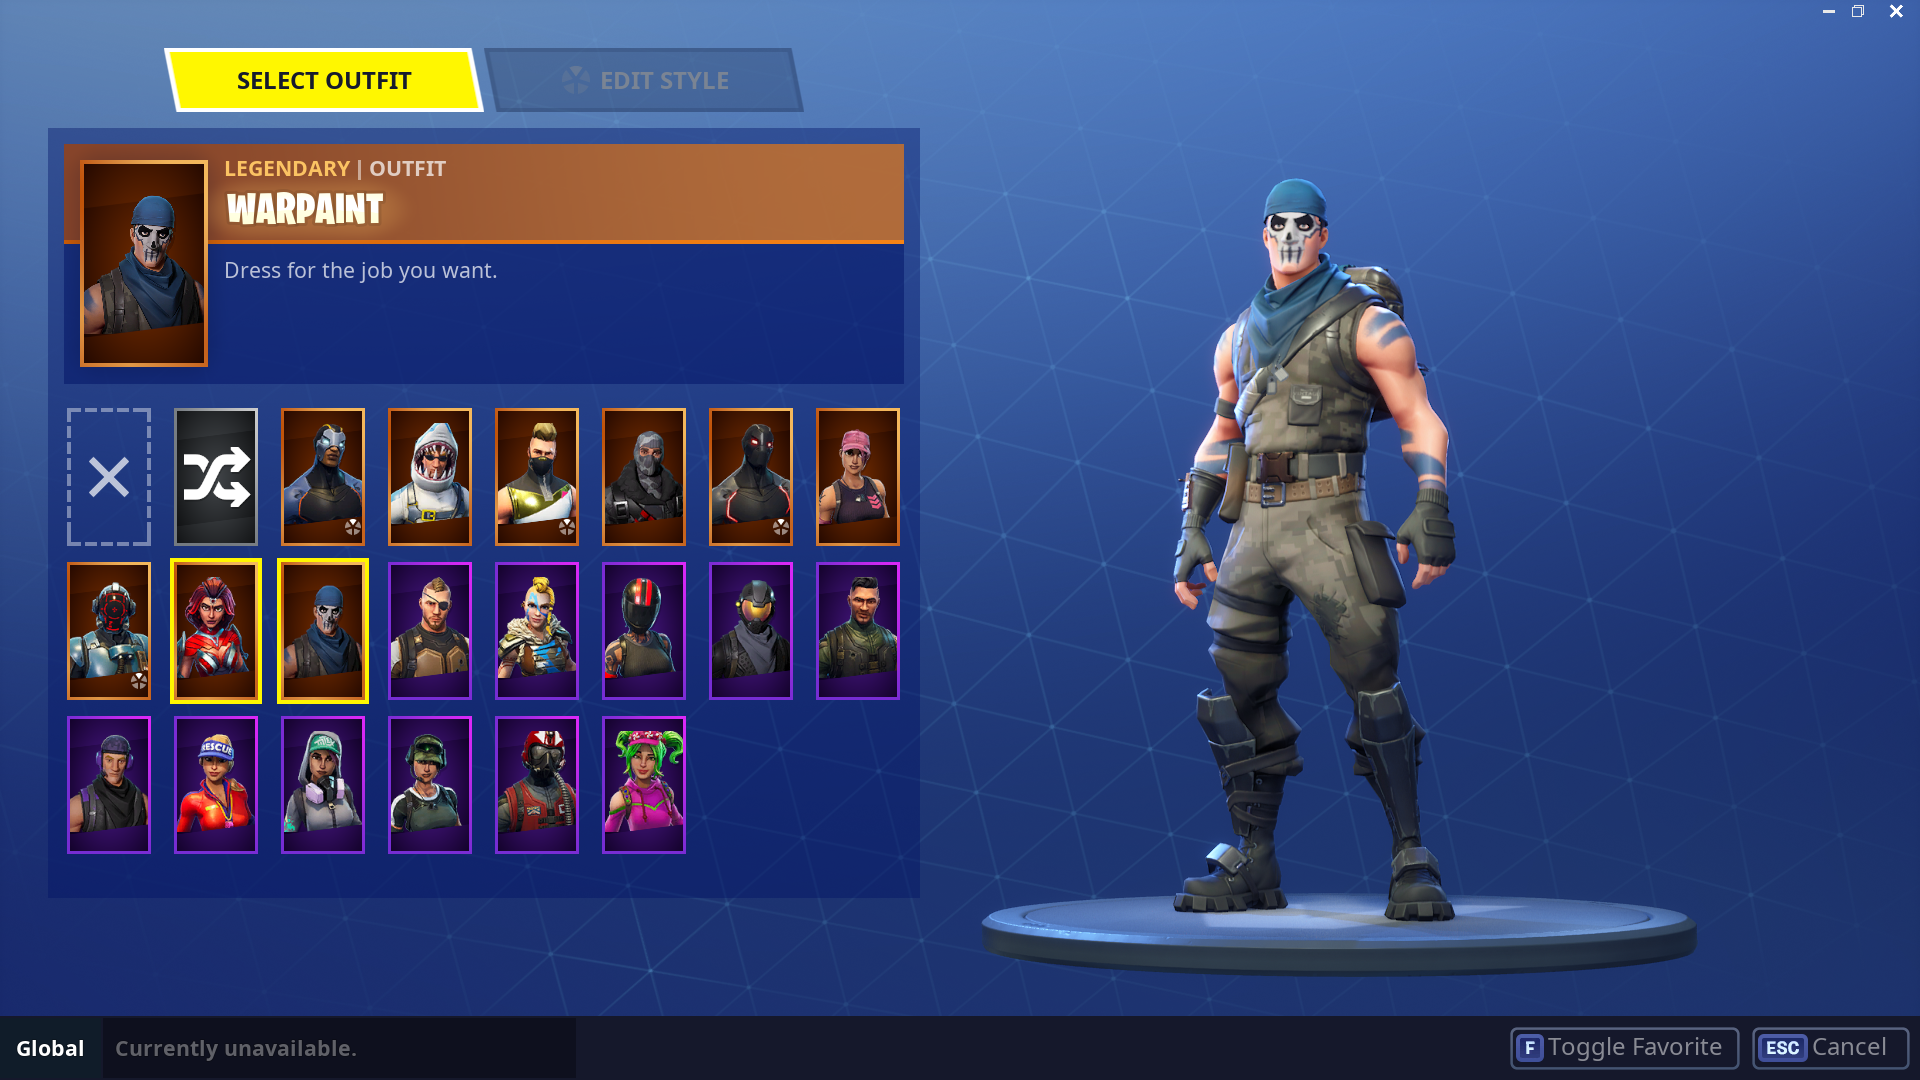 download Fortnite Skins For Founders Pack See The Exclusive 1920x1080